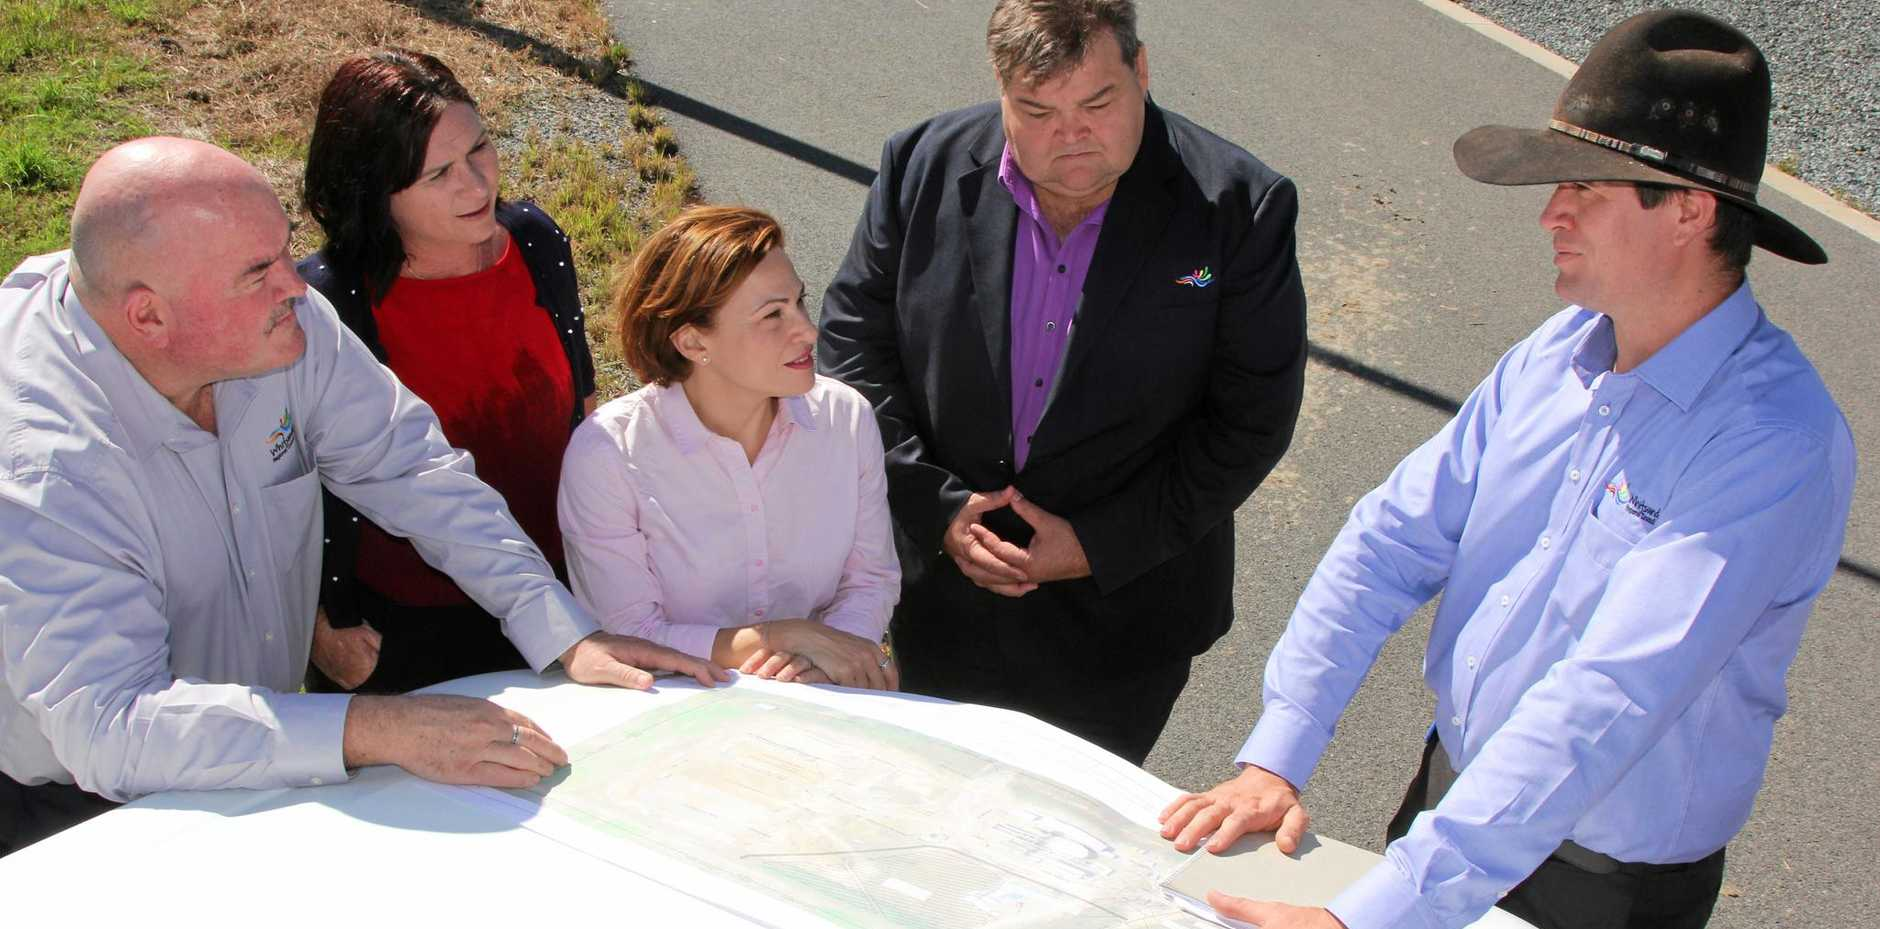 NEW WORK: Cr Mike Brunker, Whitsunday Labor candidate Bronwyn Taha, acting Queensland Premier Jackie Trad and Cr John Collins listen to council's manager of assets and planning Yestin Hughes at the Bowen water treatment facility near Proserpine during an announcement of solar project at the site.